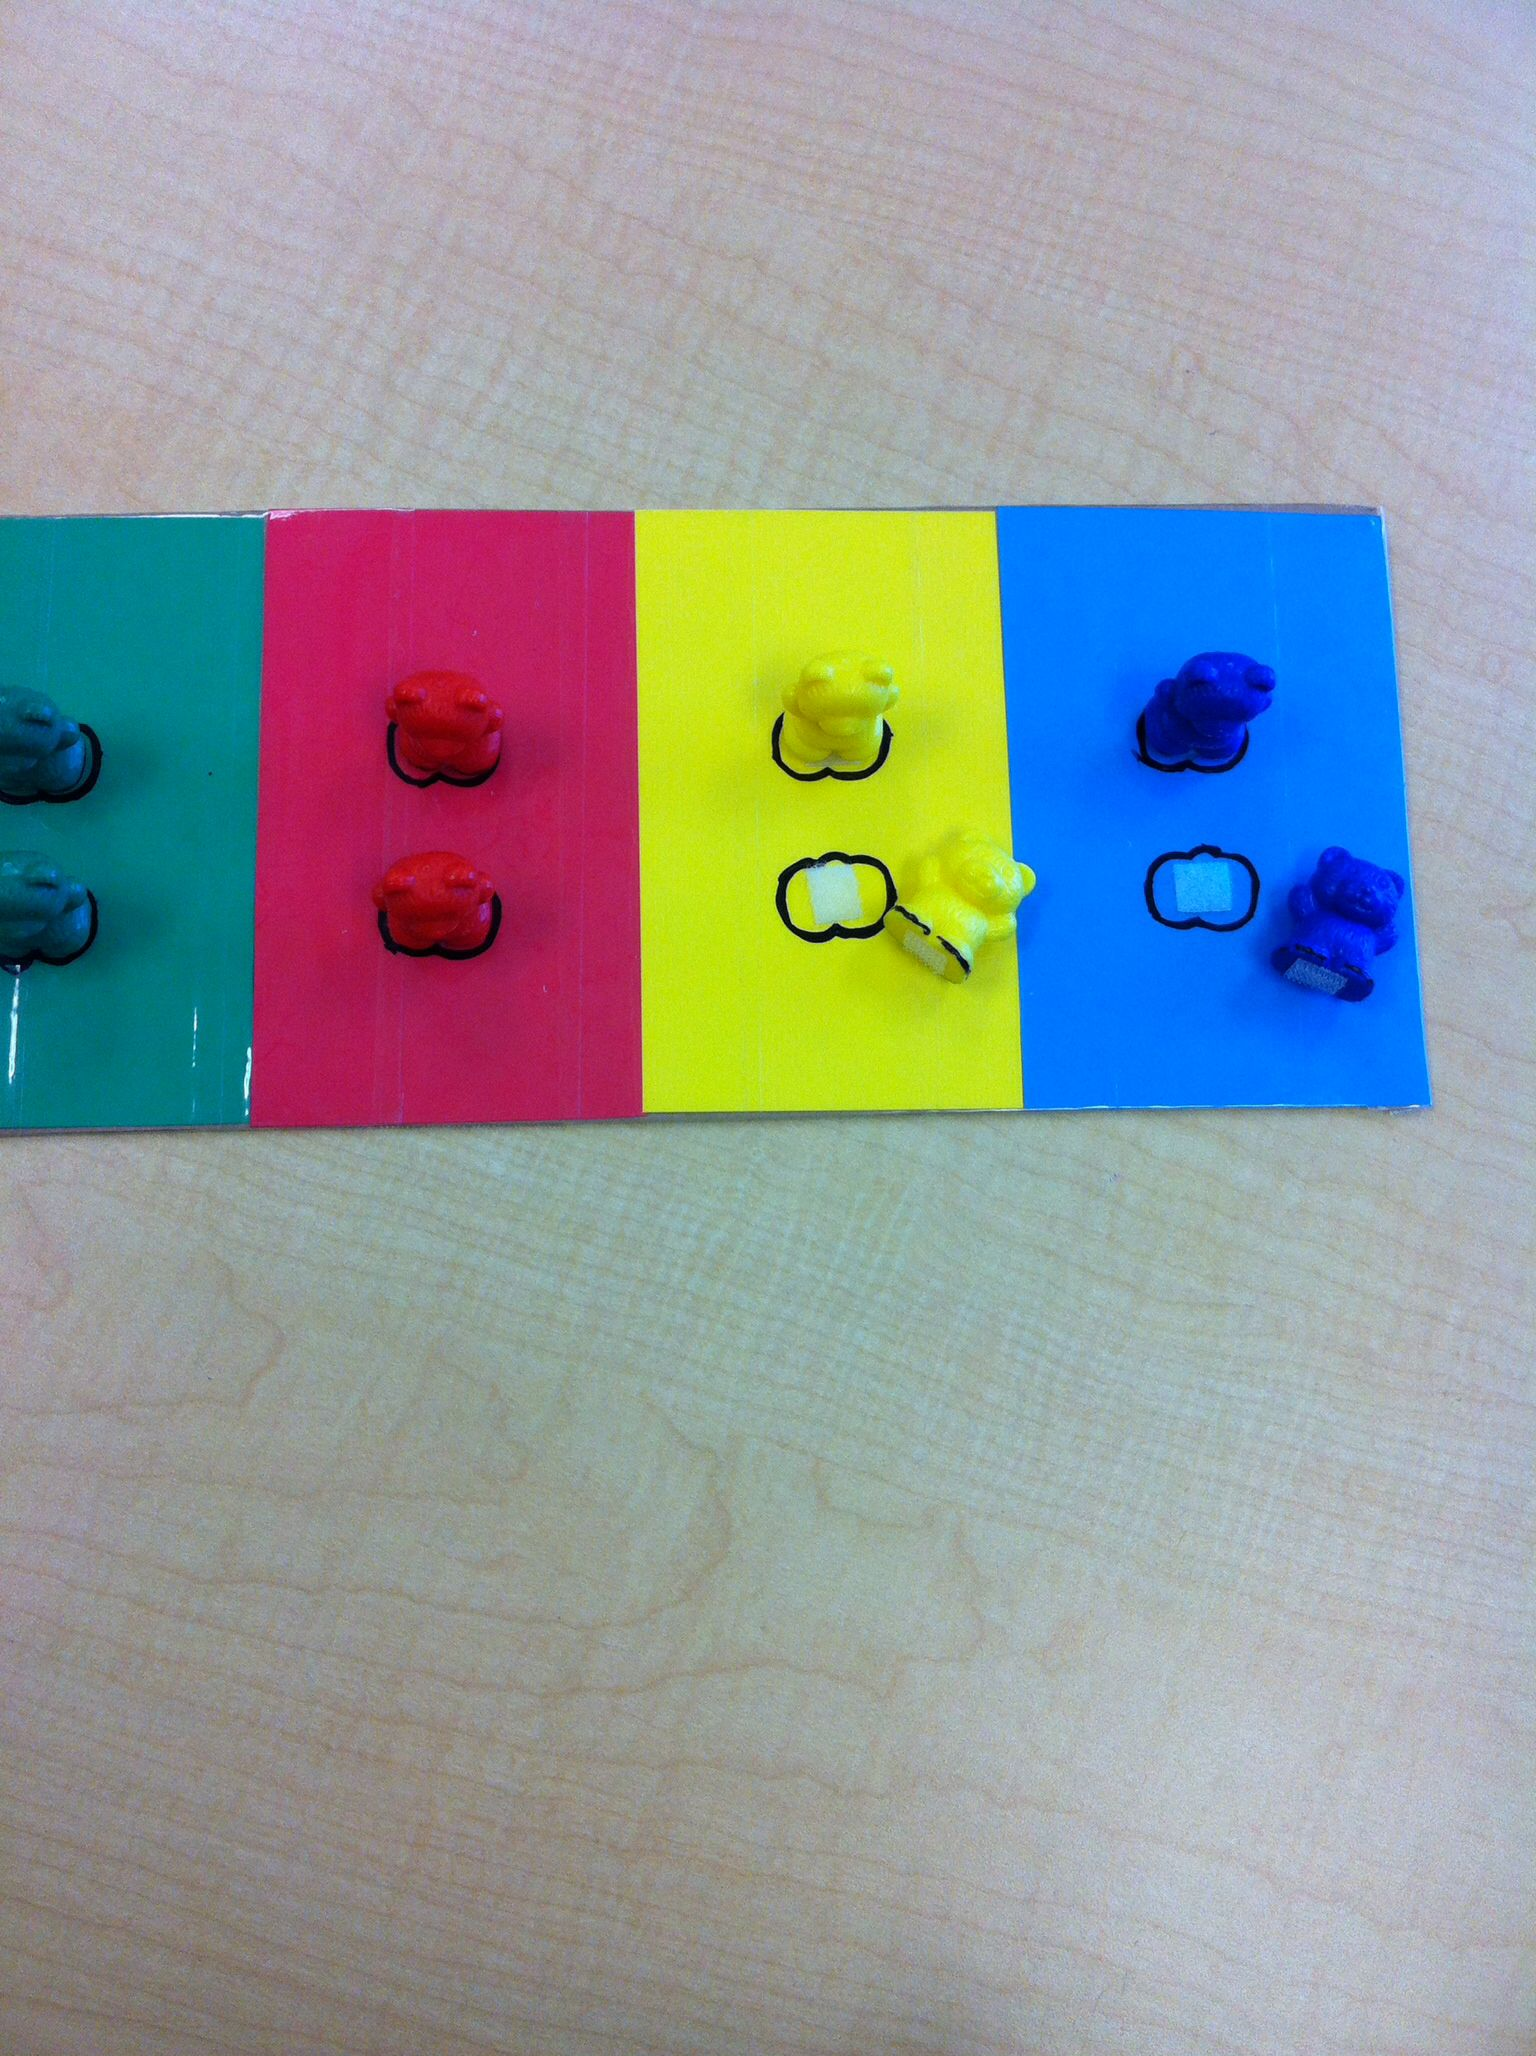 Teacch Task Matching Colored Bears